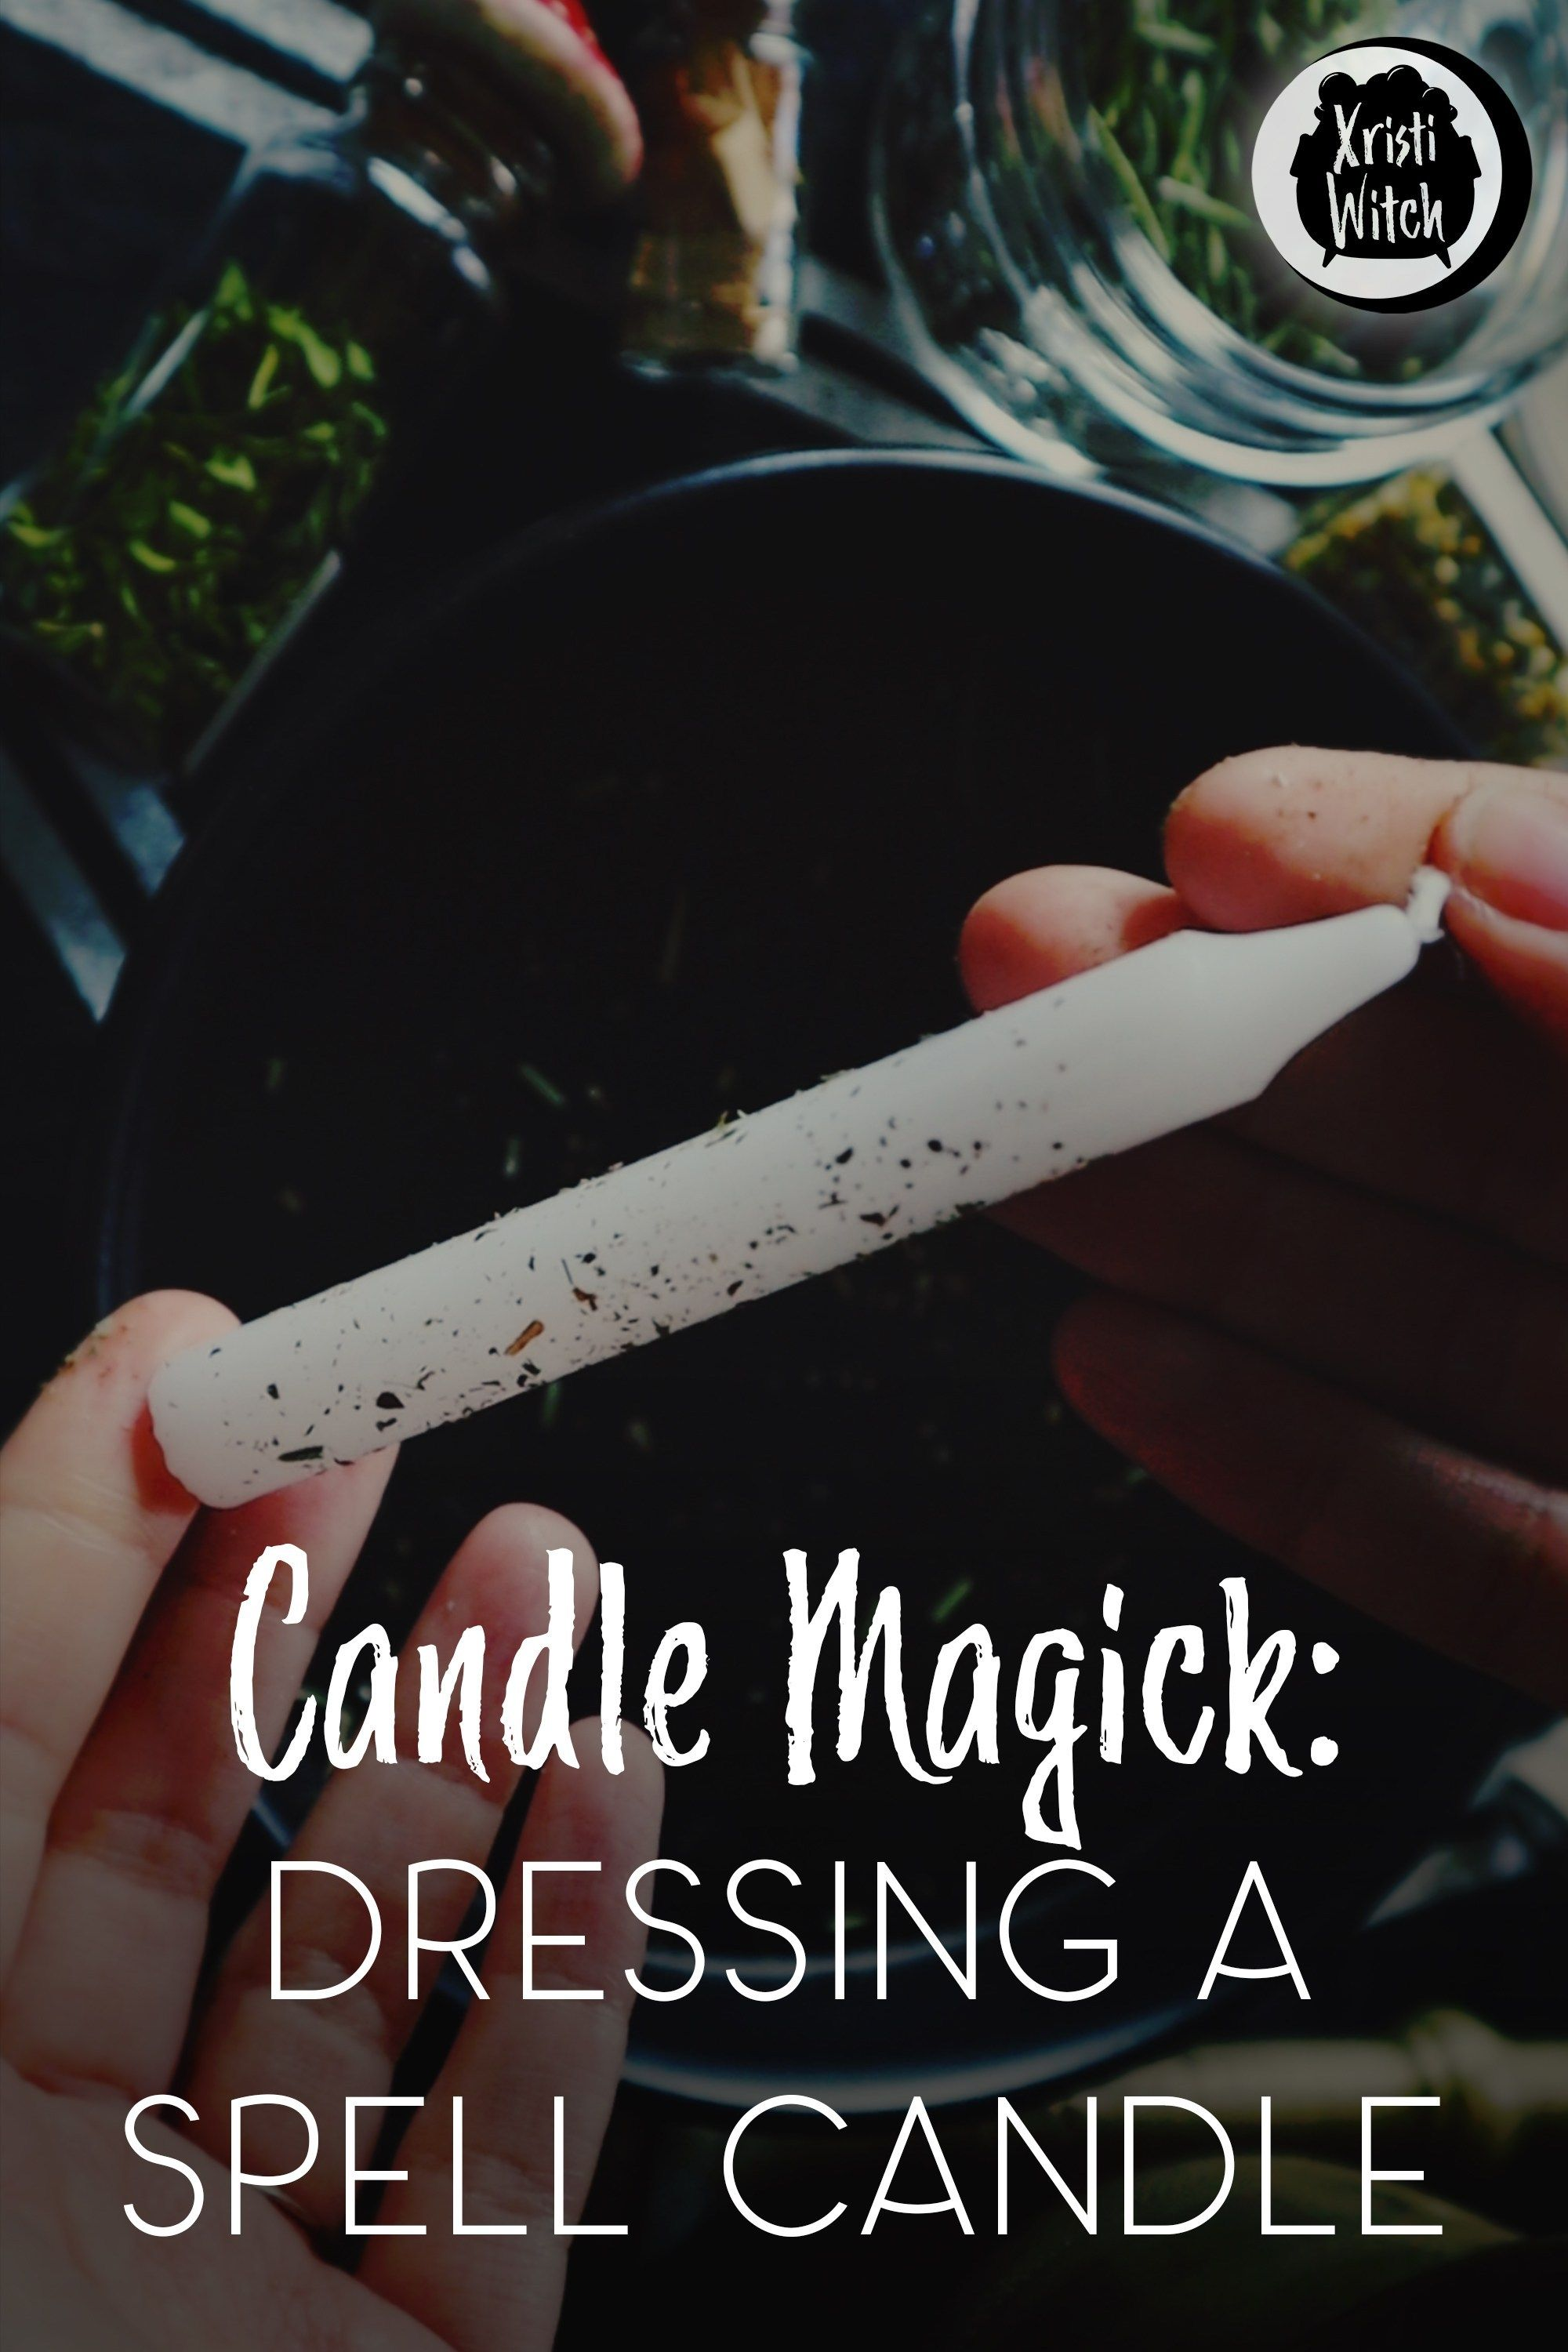 Candle Magick: Dressing a Spell Candle #candlemagick